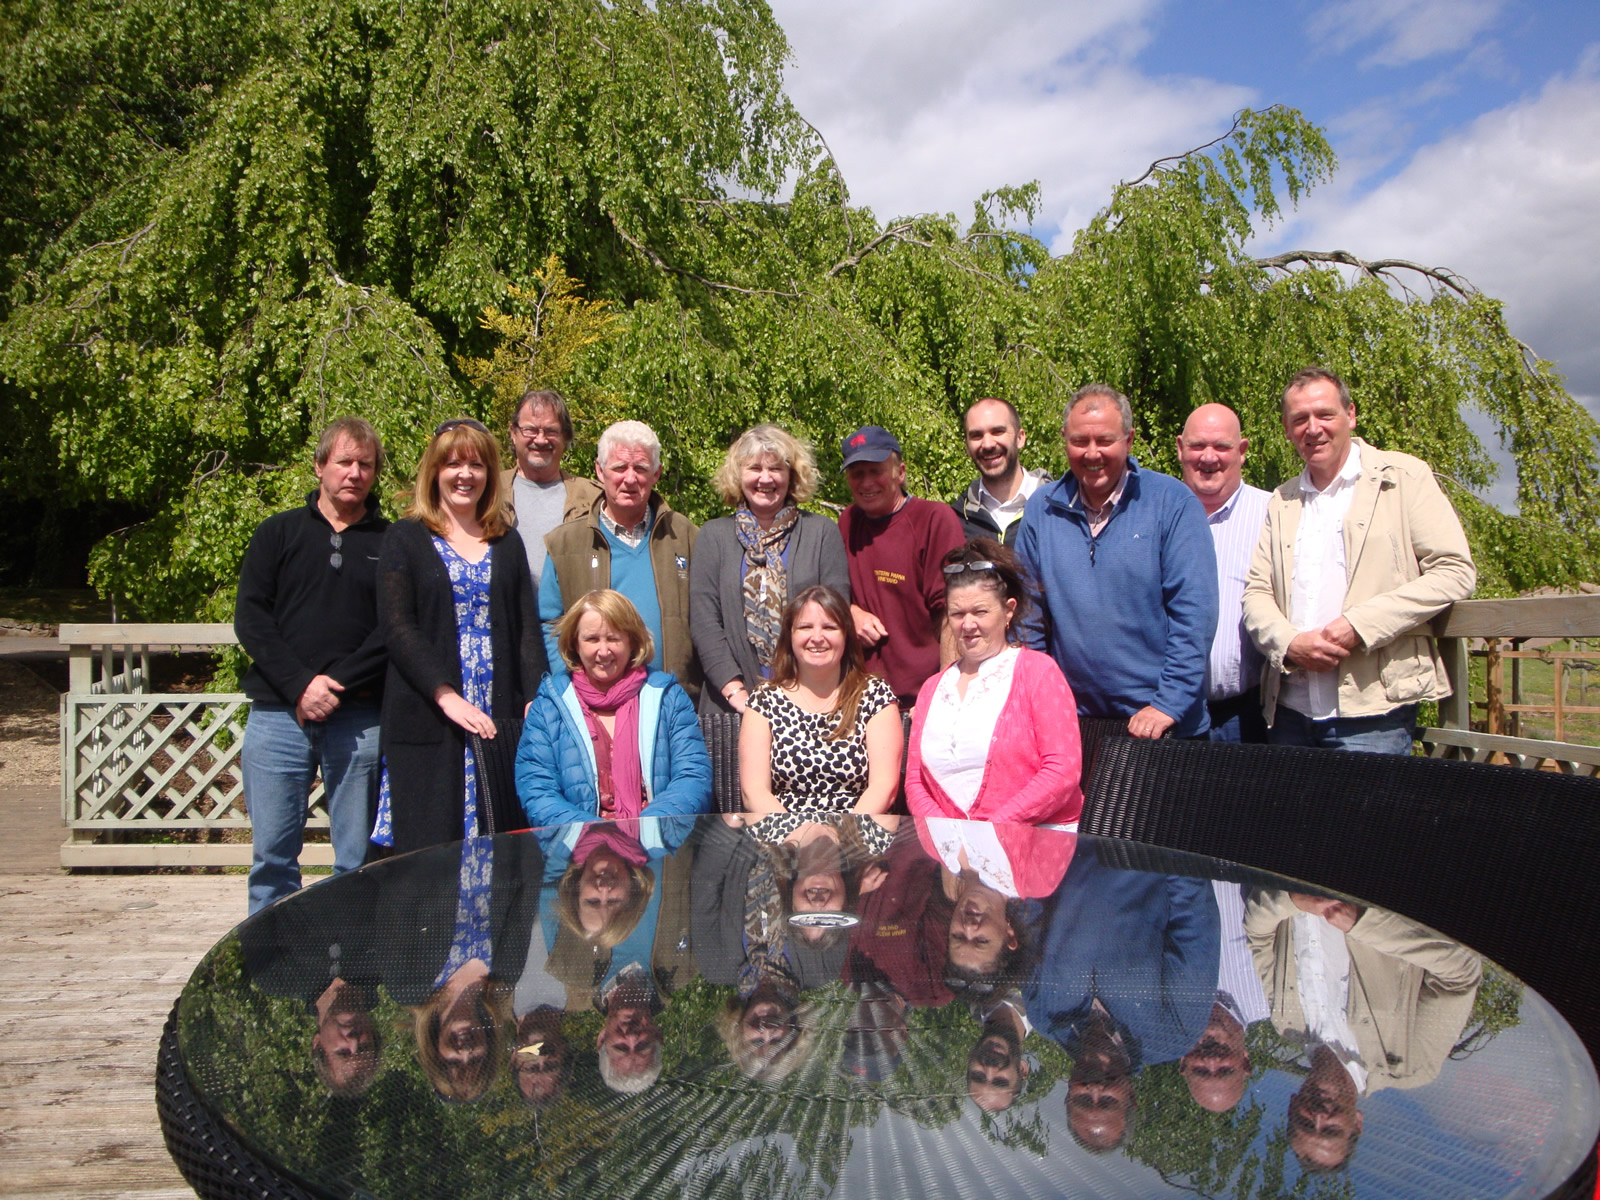 GETTING READY FOR WELSH WINE WEEK: Members of the Welsh Vineyard Association